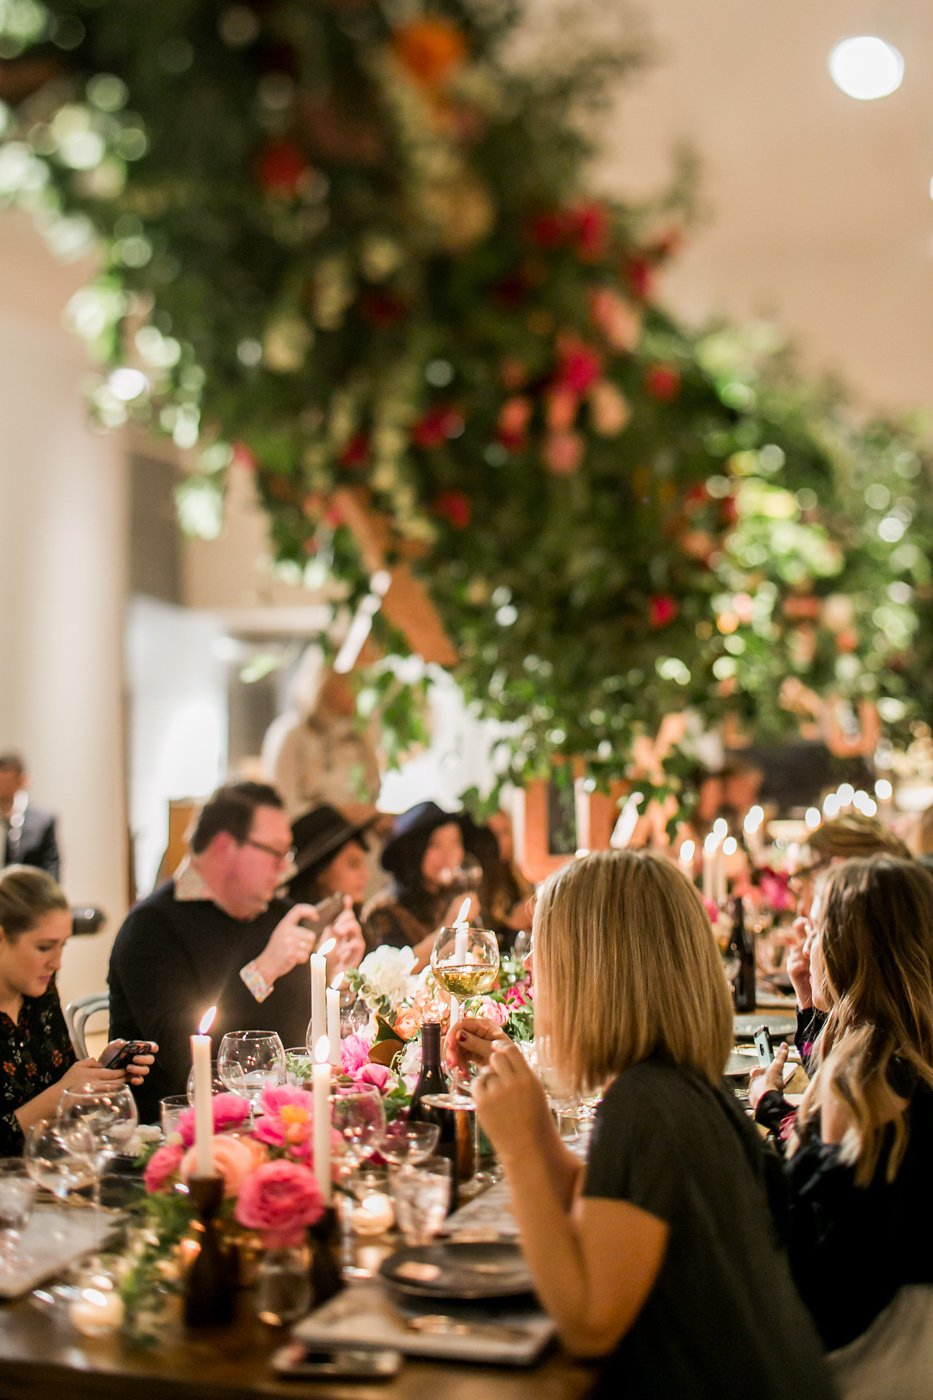 Guests sit at Valentine's Day dinner table